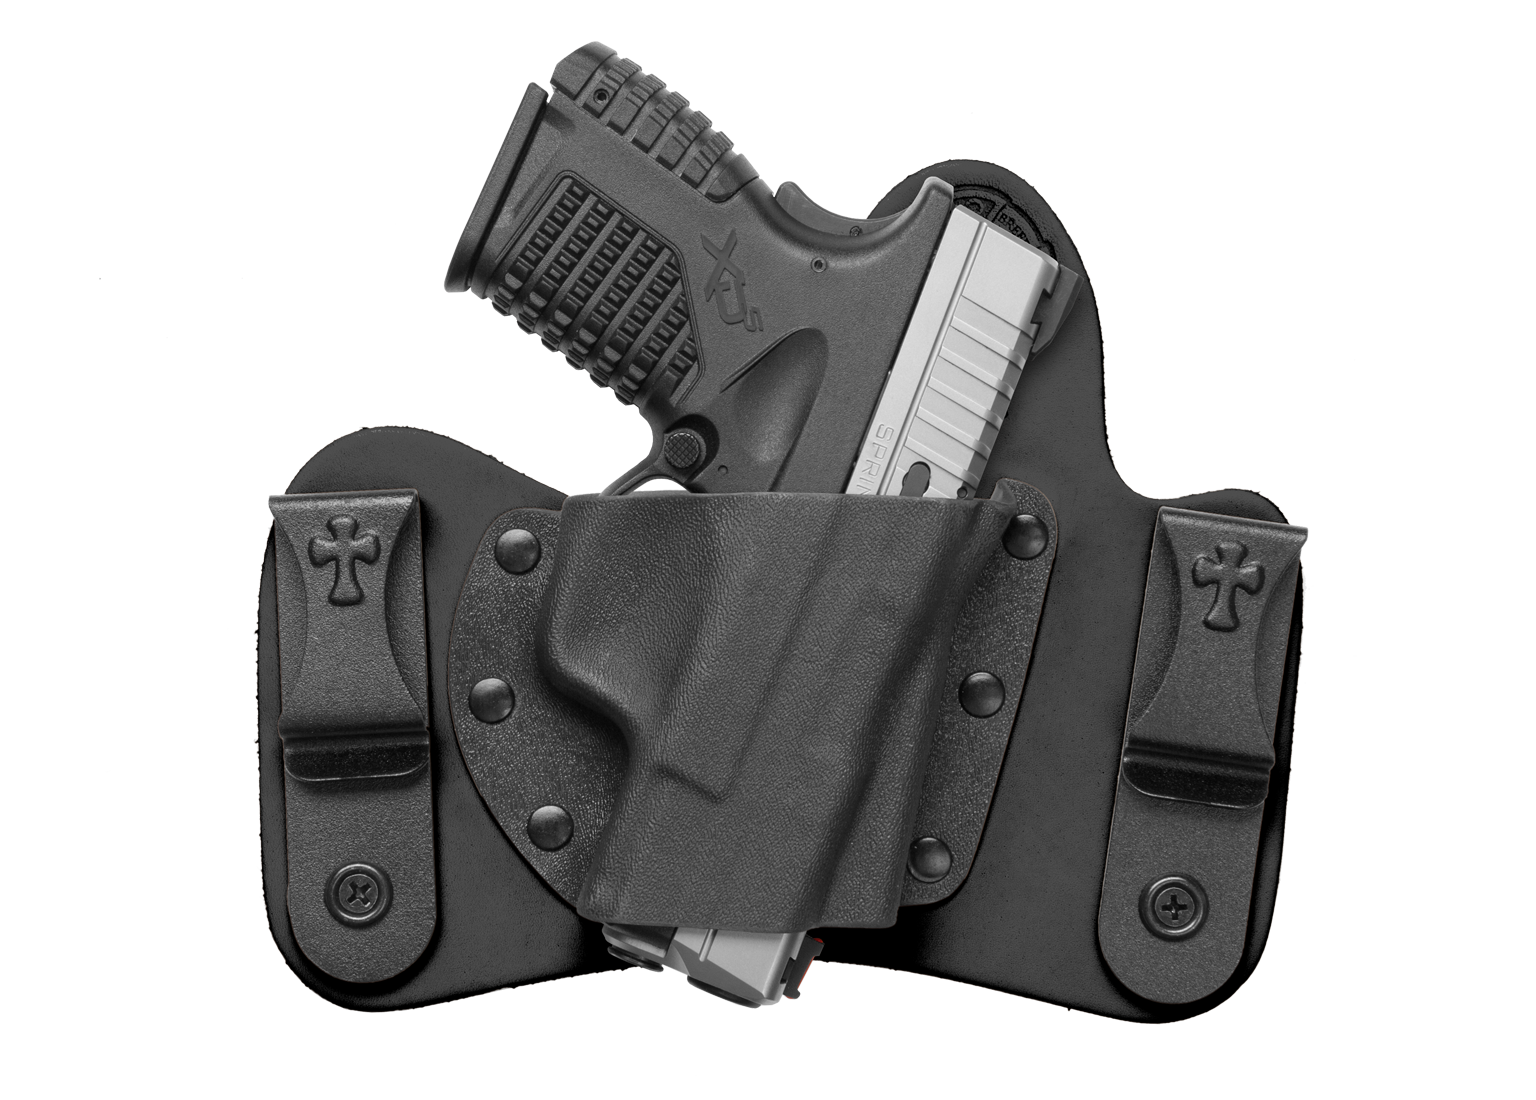 Kydex clip iwb holster. Crossbreed holsters minituck concealed